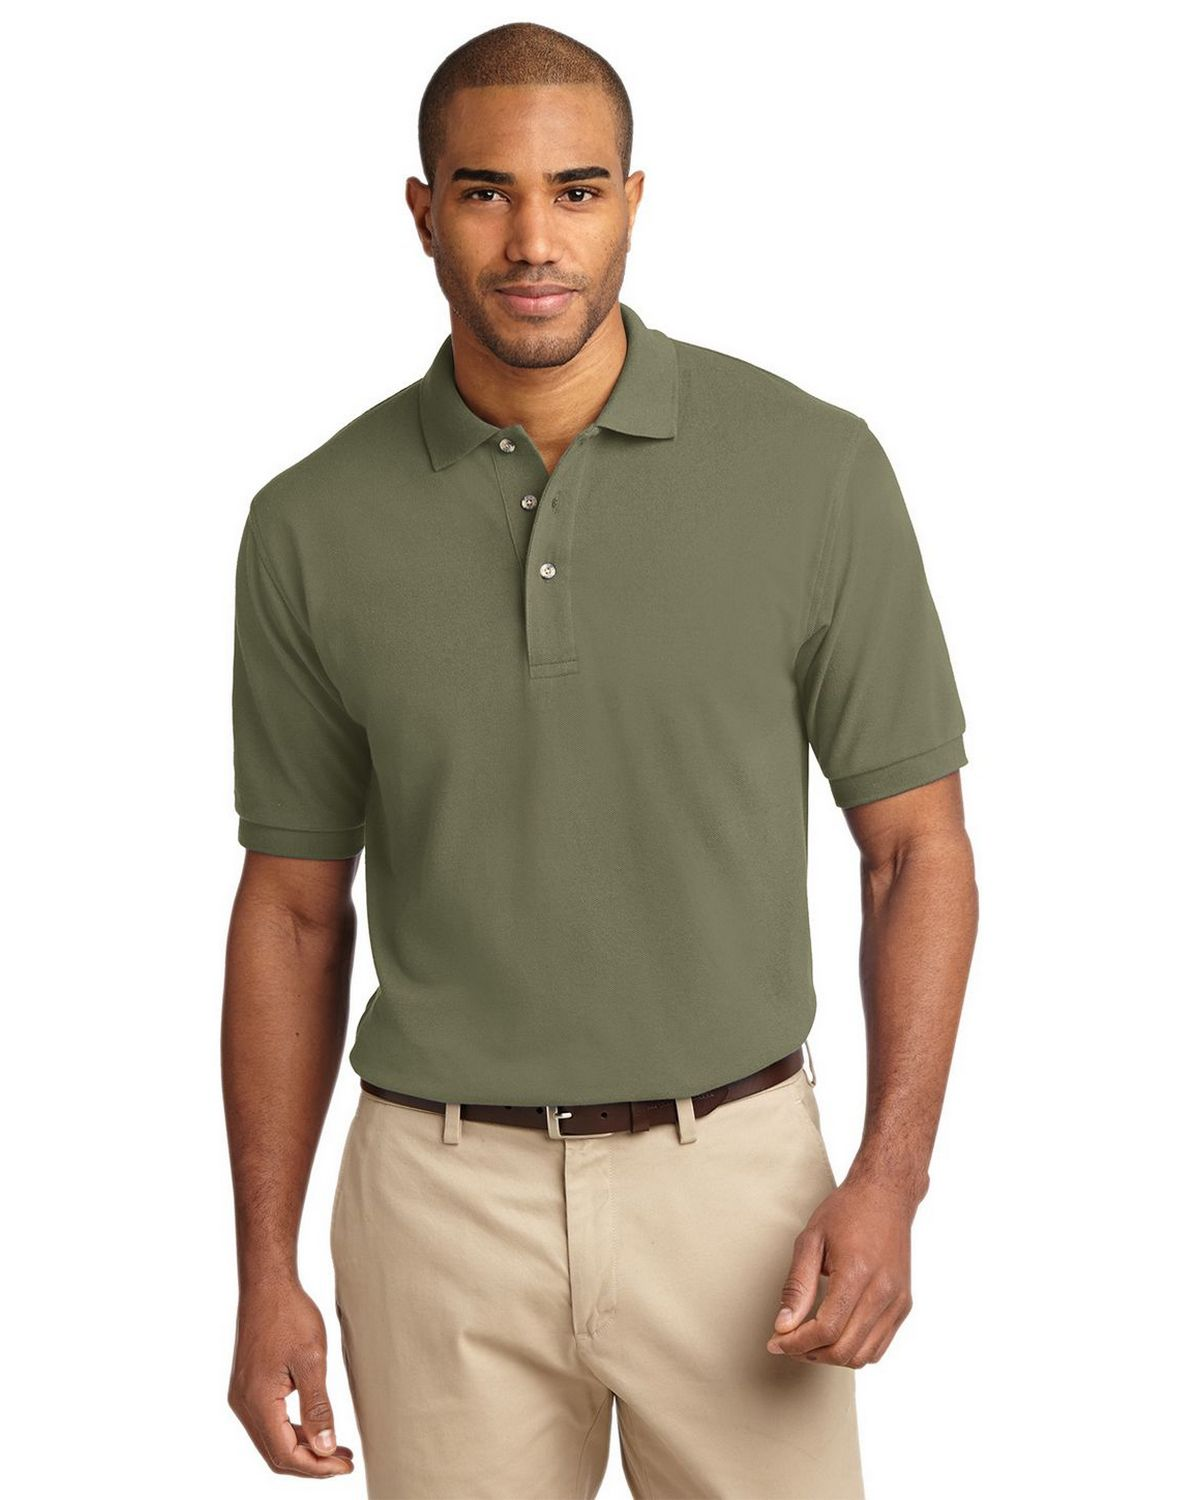 Port Authority K420 Pique Knit Polo - Faded Olive - XS